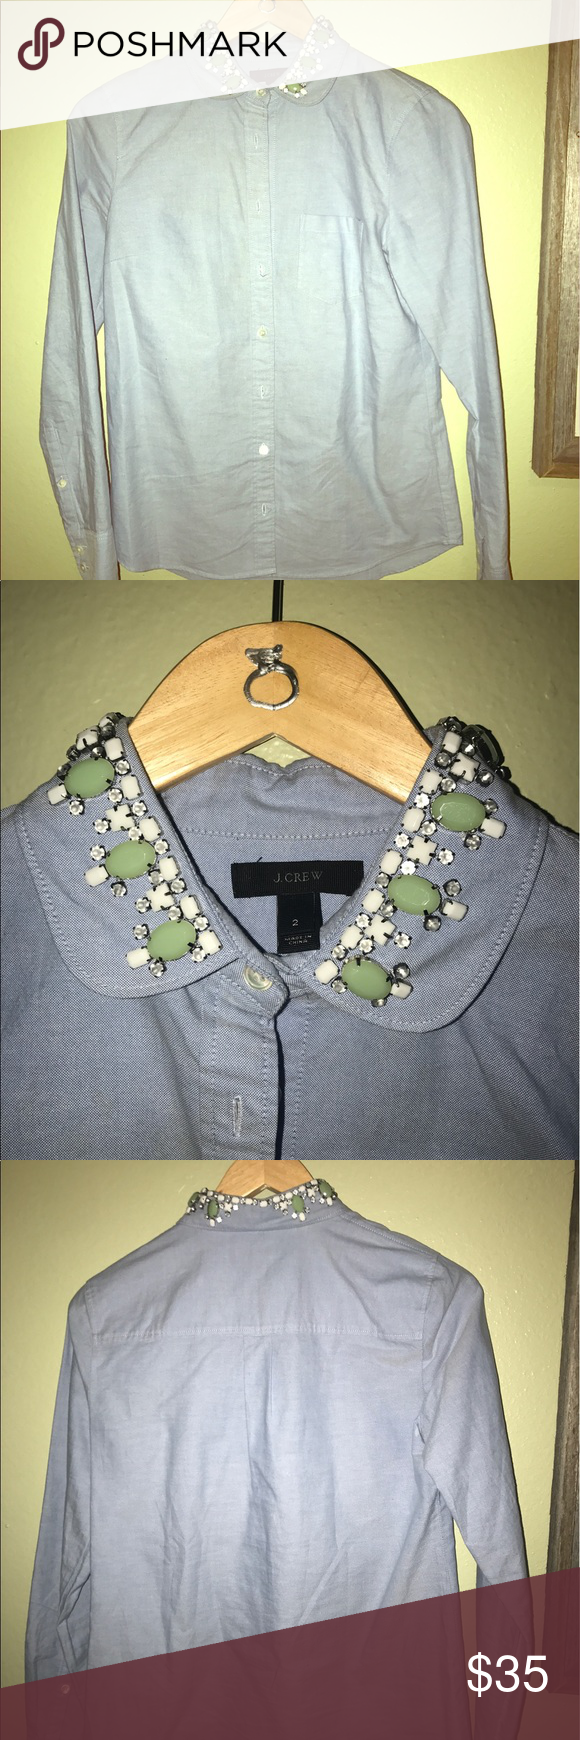 J. Crew chambray blue button down with gemstones Amazing condition J. Crew chambray, blue button down with gemstones. All in place. Size. 2 J. Crew Tops Button Down Shirts